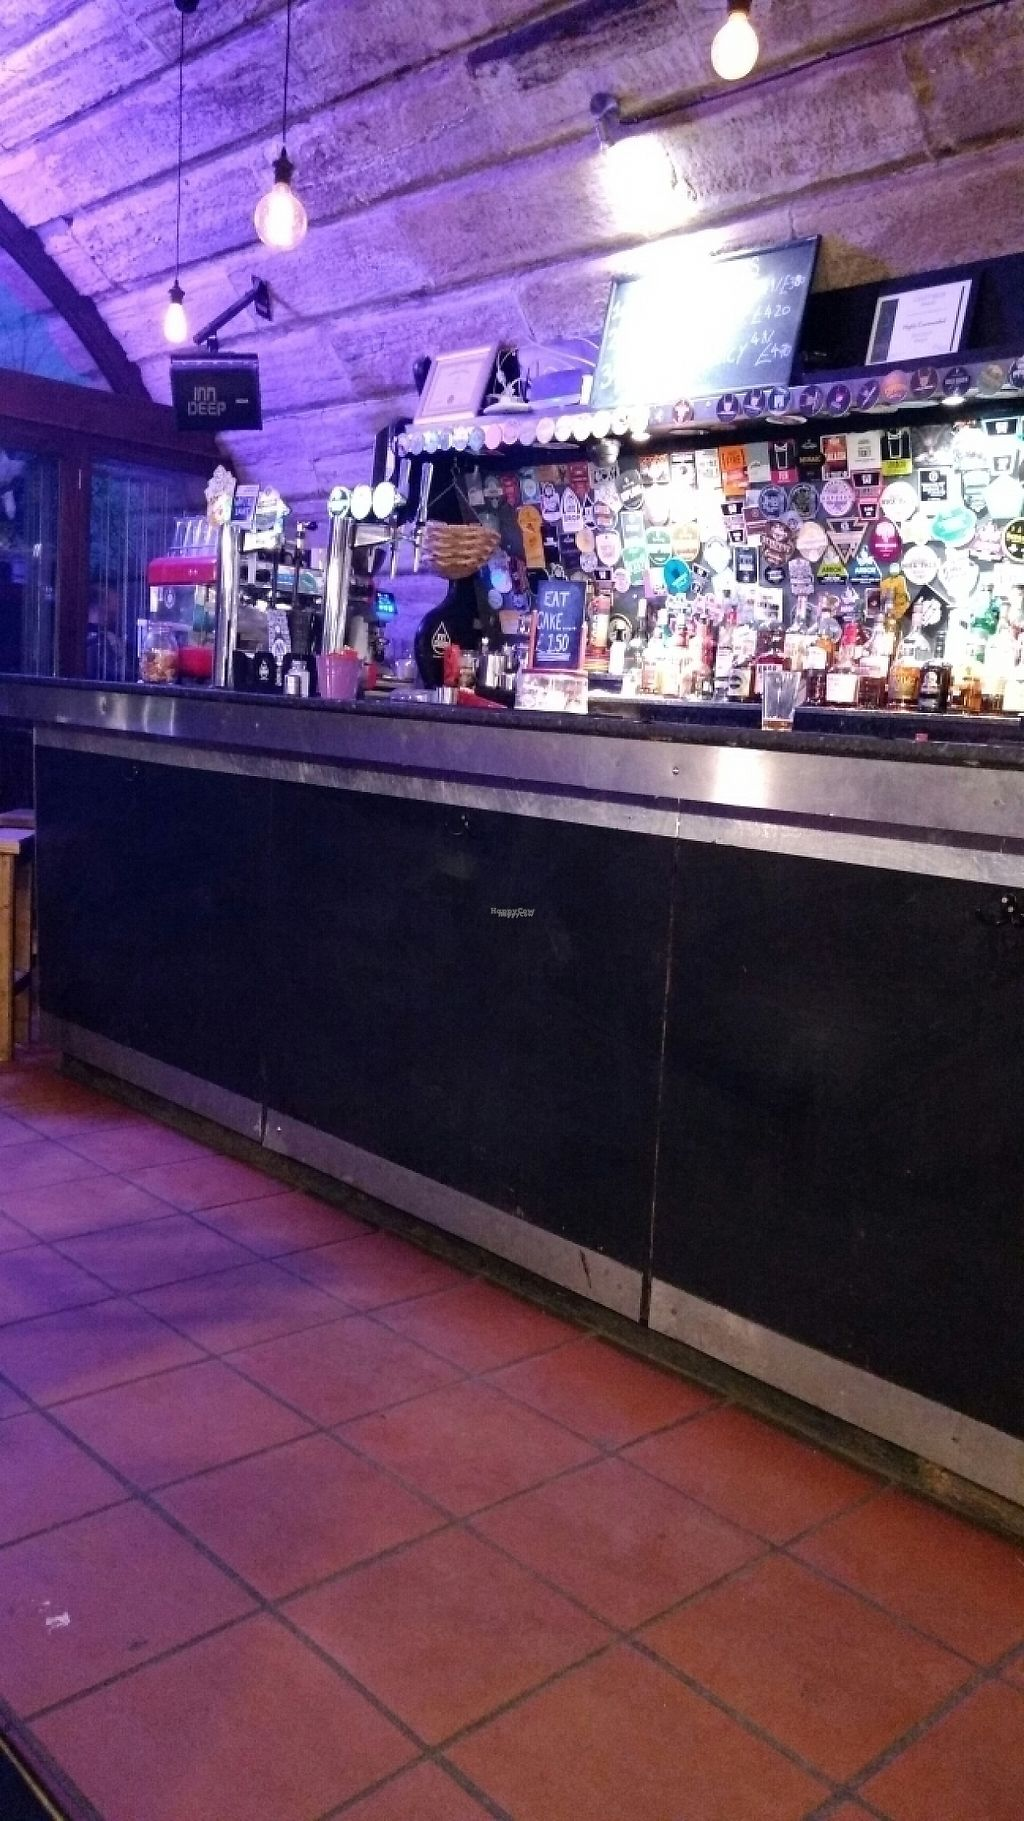 """Photo of Inn Deep  by <a href=""""/members/profile/craigmc"""">craigmc</a> <br/>beer anyone? <br/> March 13, 2017  - <a href='/contact/abuse/image/80359/235973'>Report</a>"""